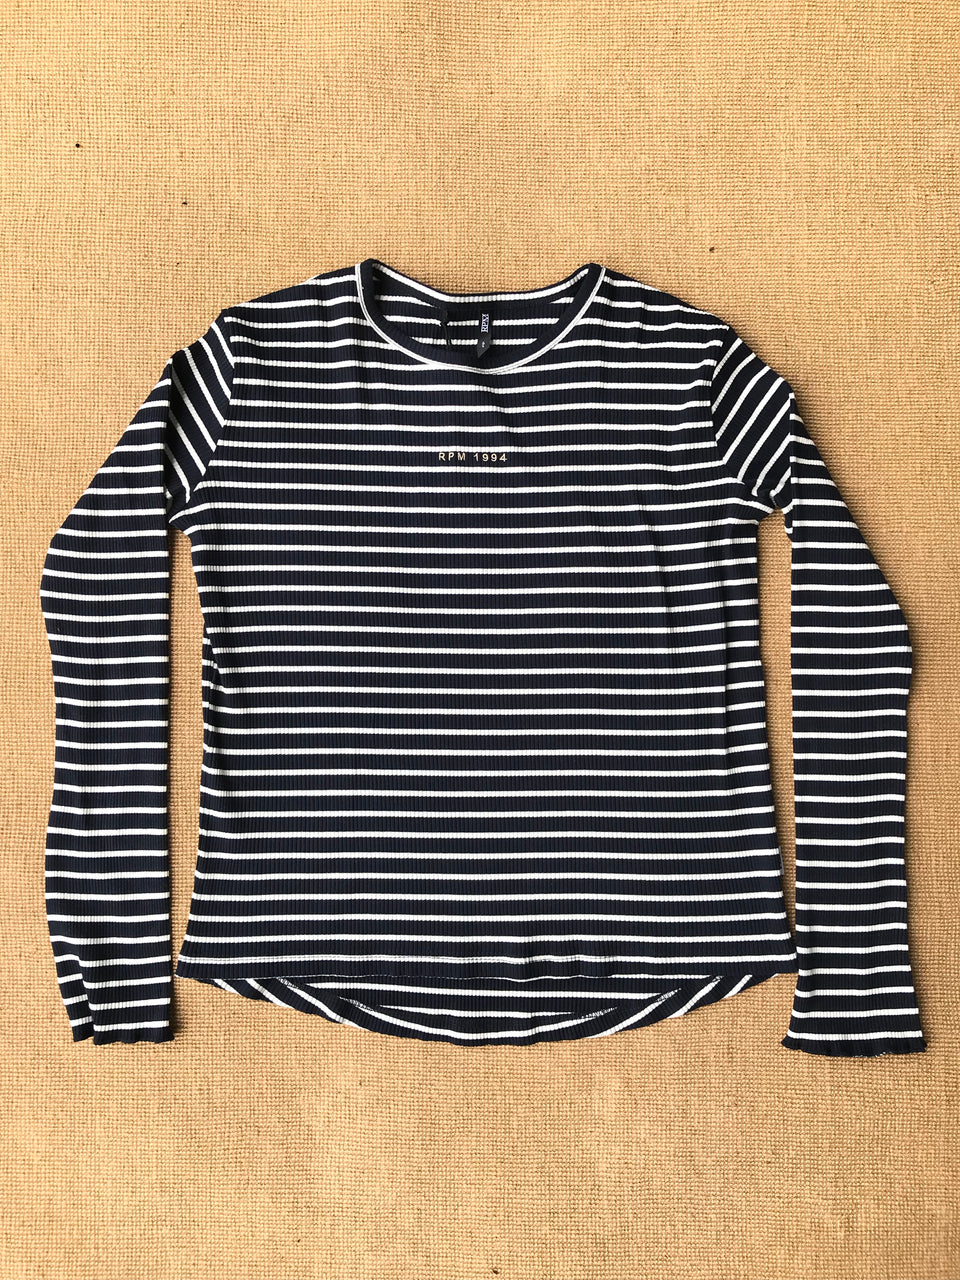 Women's Ribbed L/S Tee - Navy Stripe